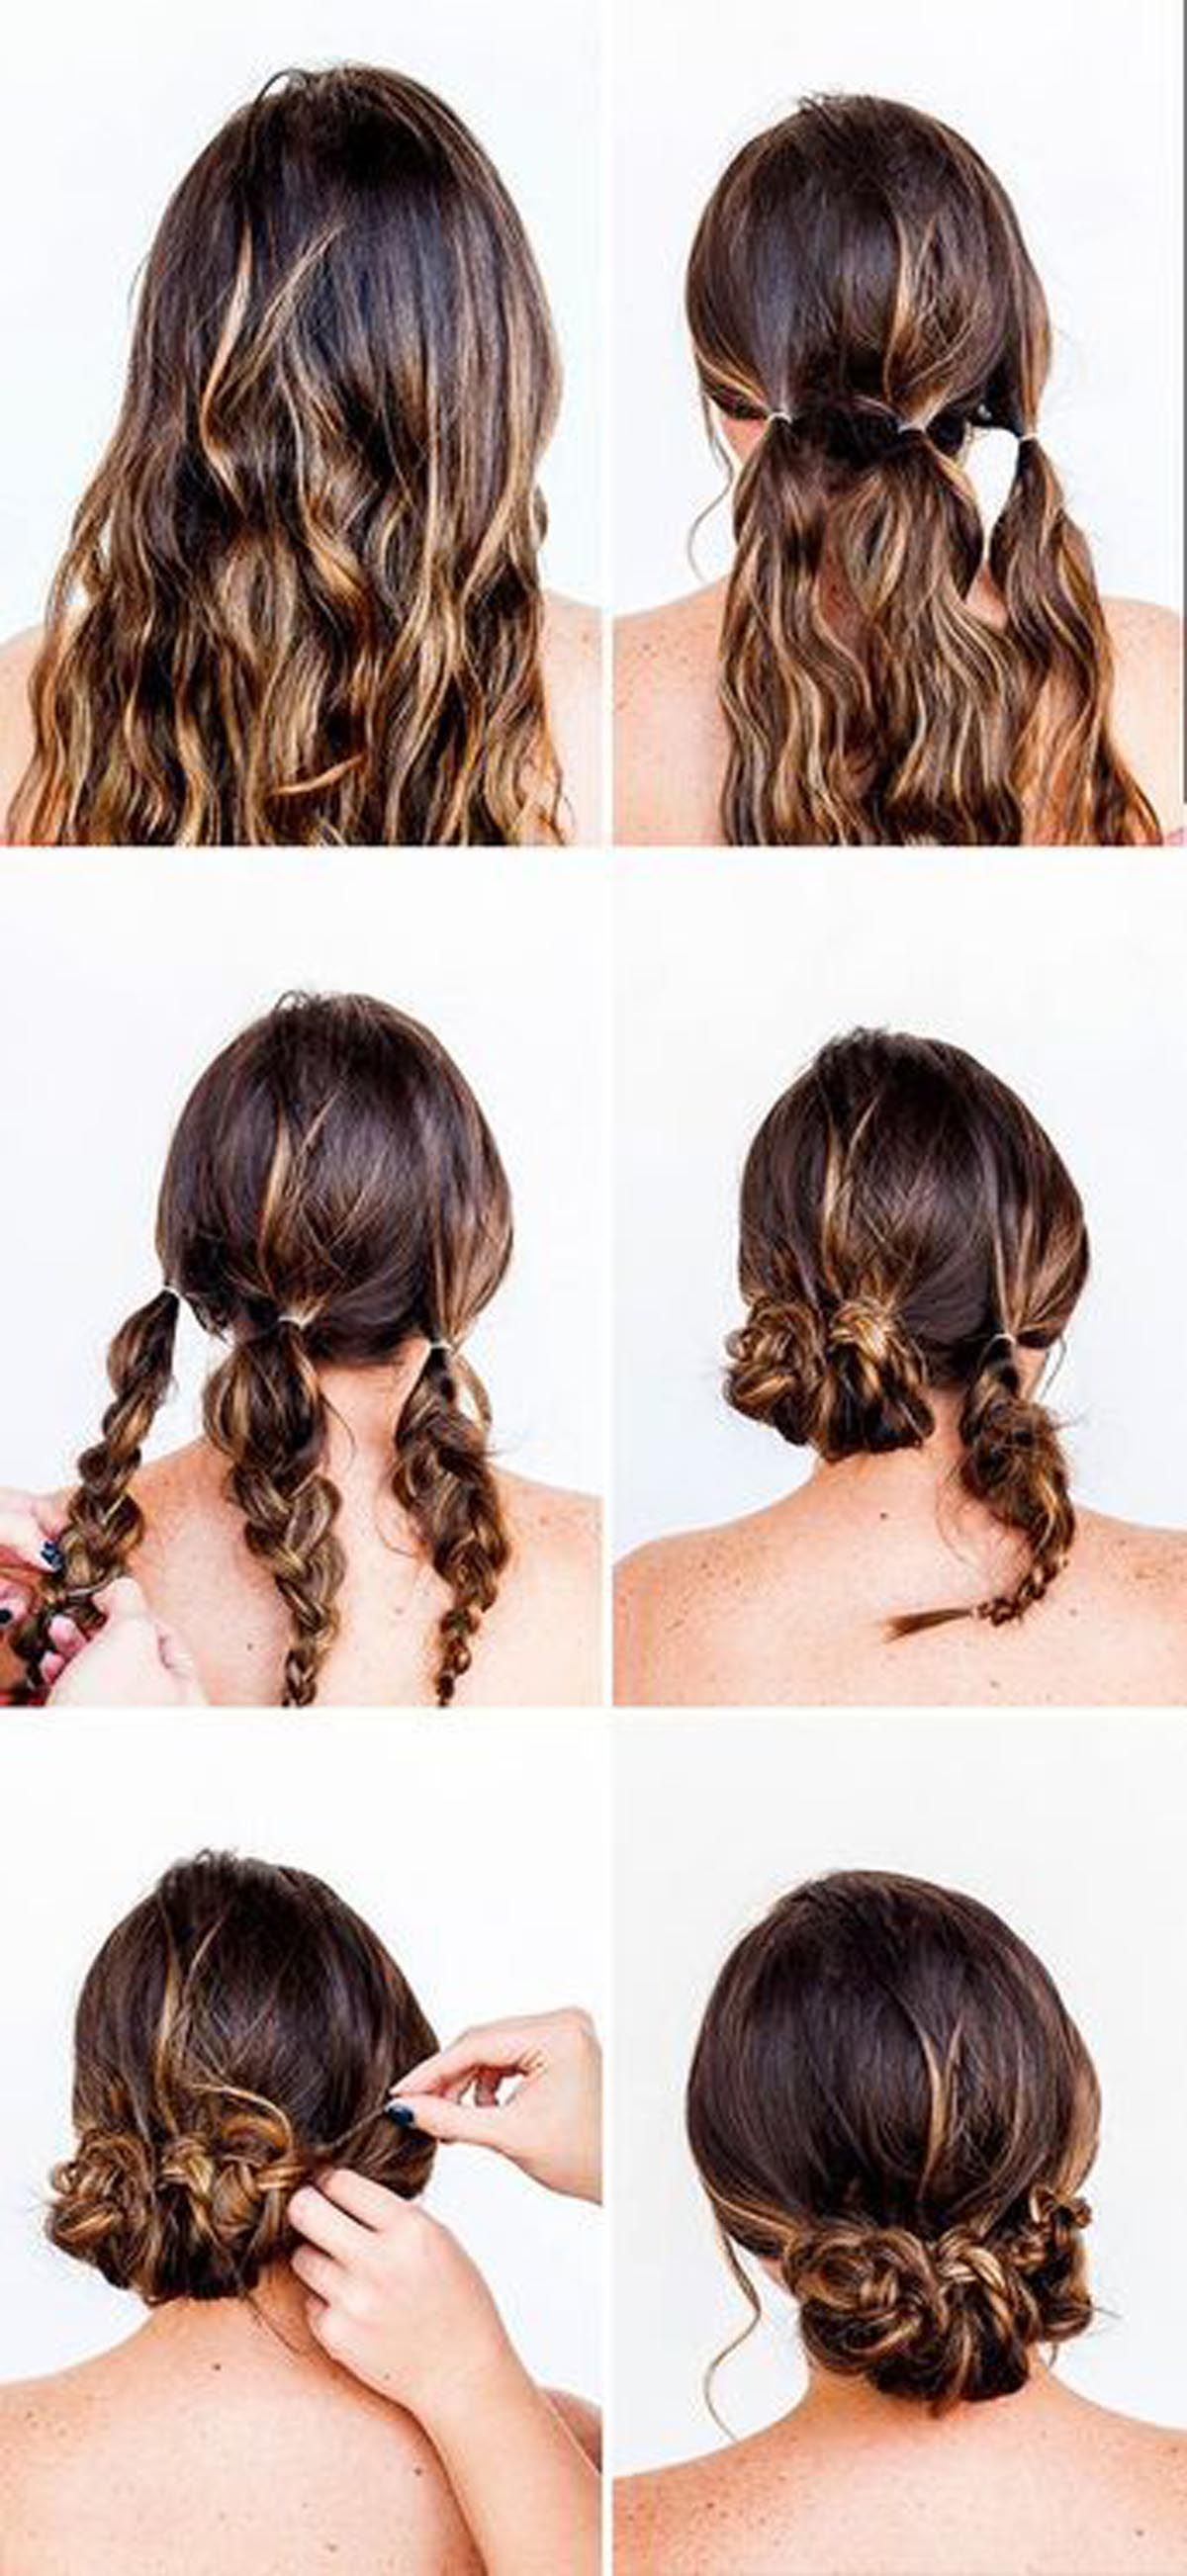 prom-hair-wedding-hair-abiballfrisur-abiball-frisuren-brittni-mehlhoff #promhairupdowithbraid